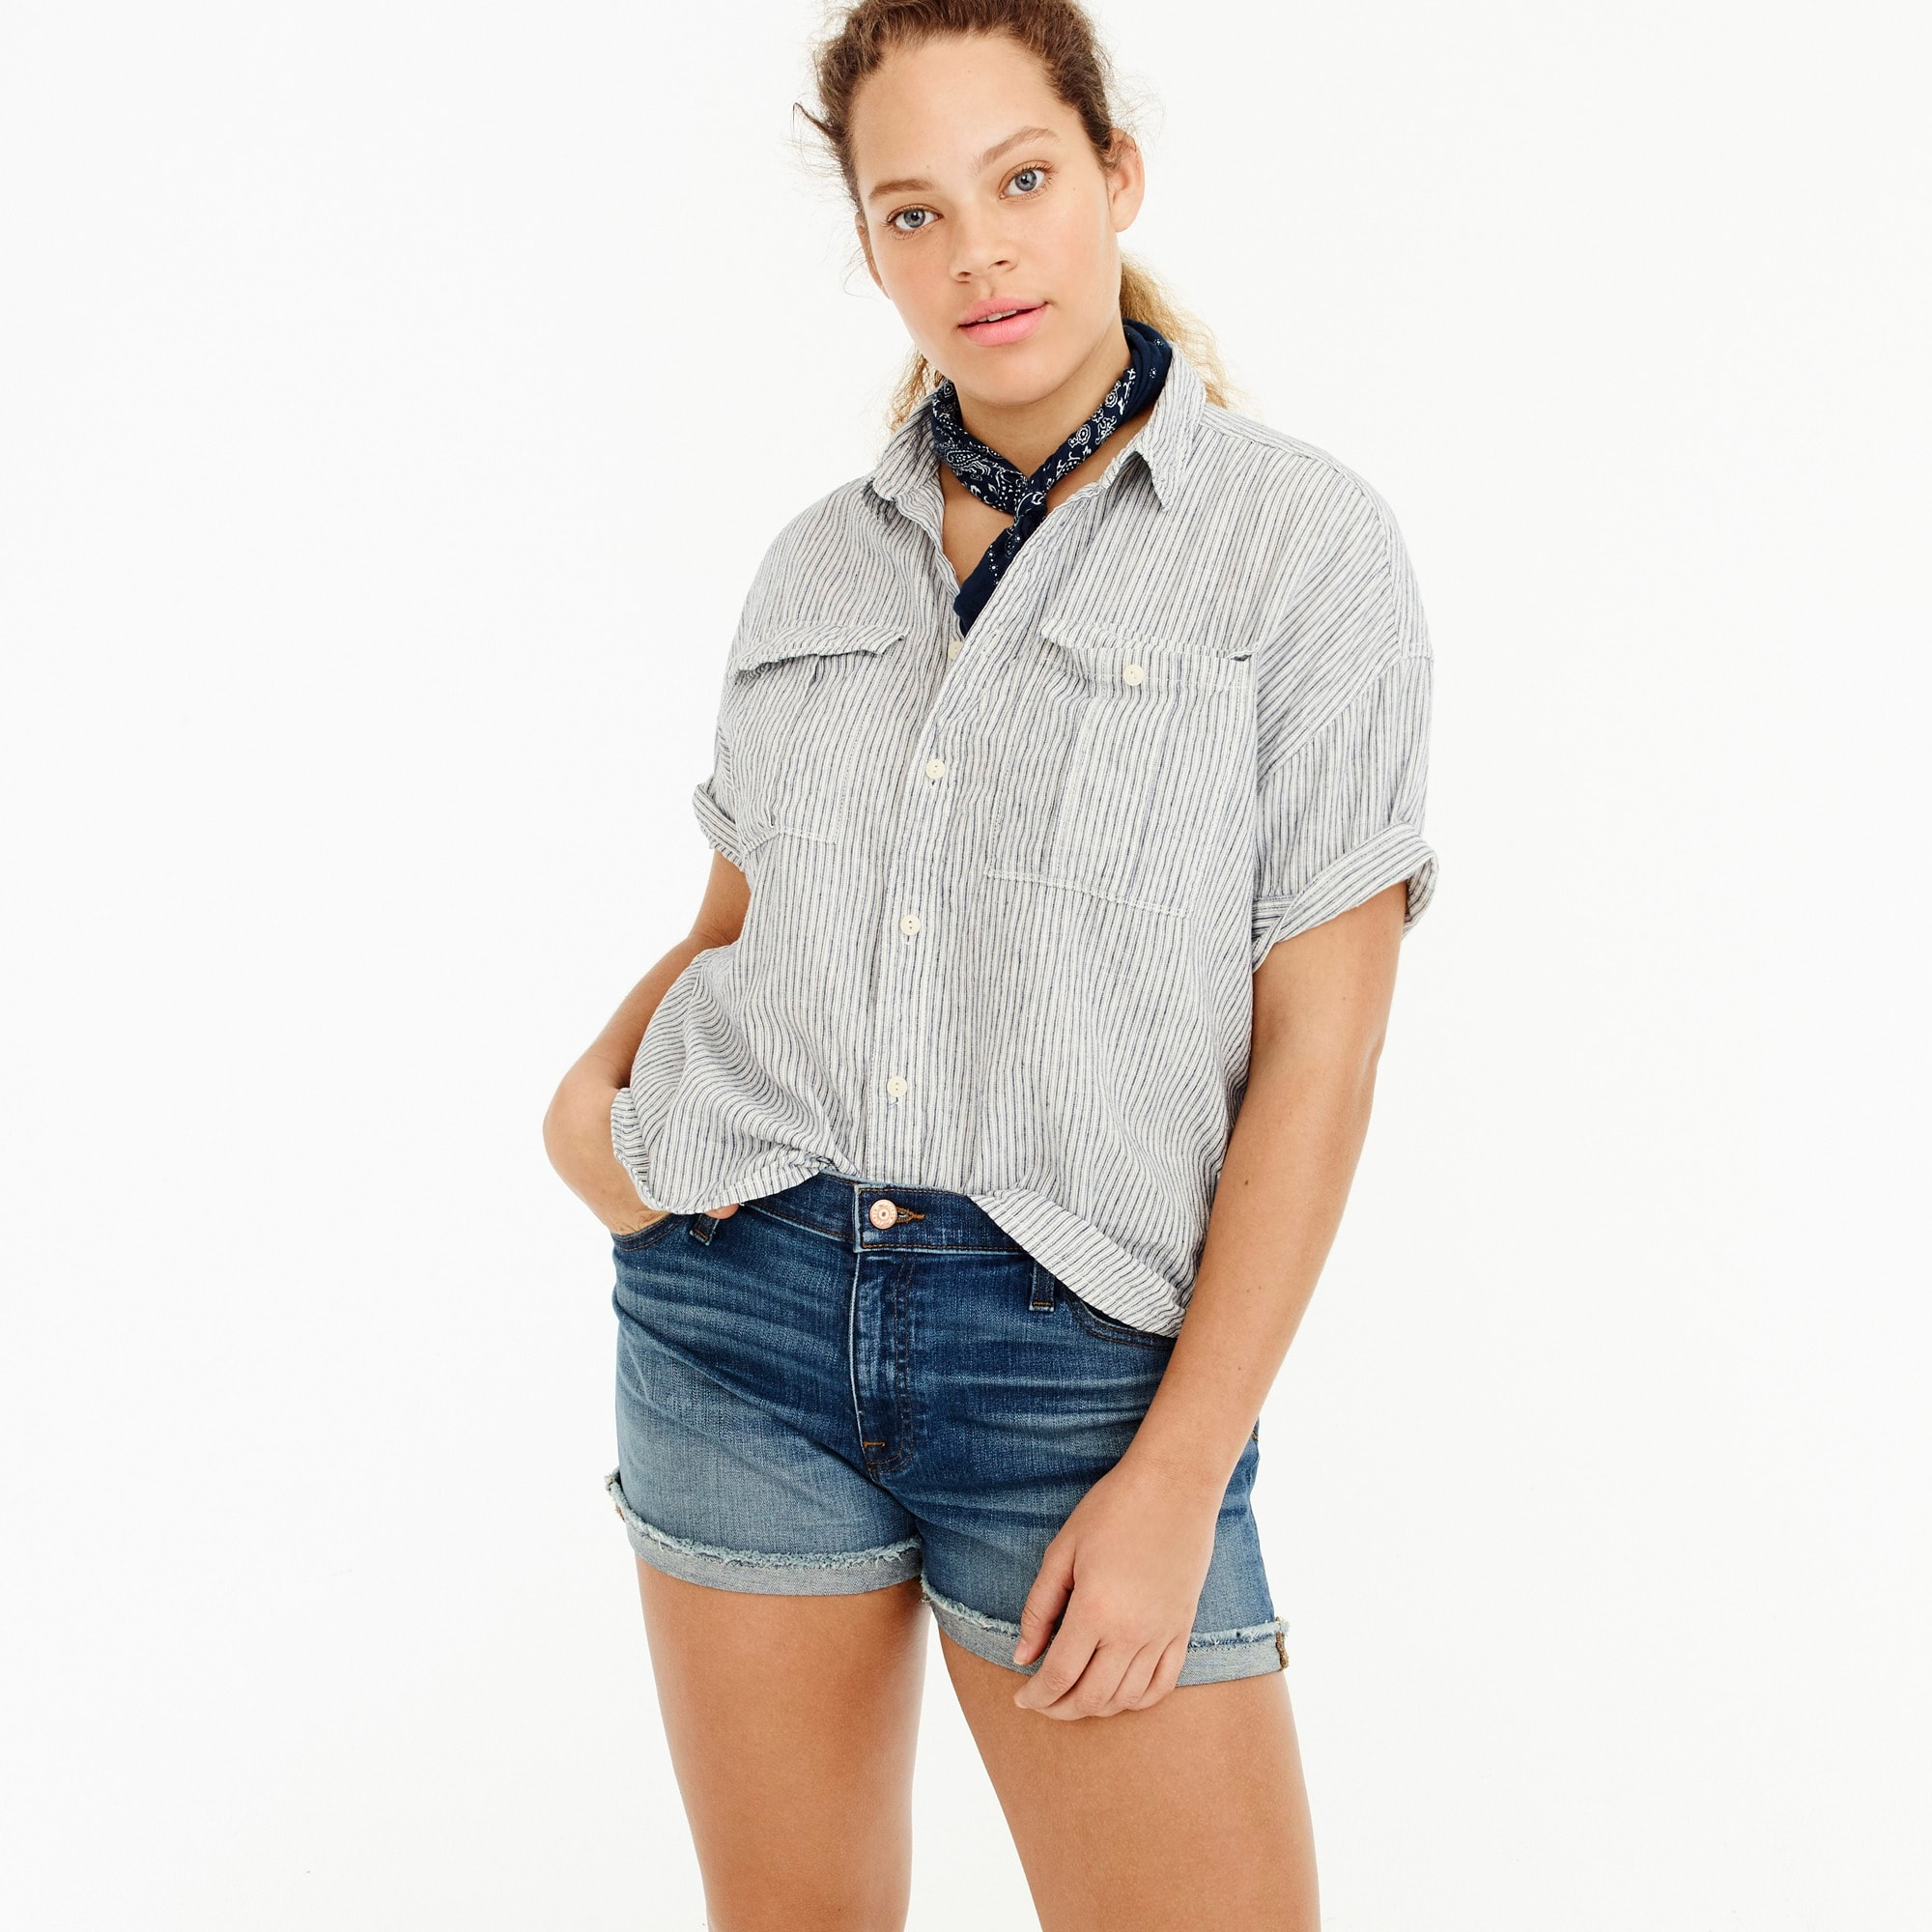 Utility pocket shirt in chambray stripe women shirts & tops c